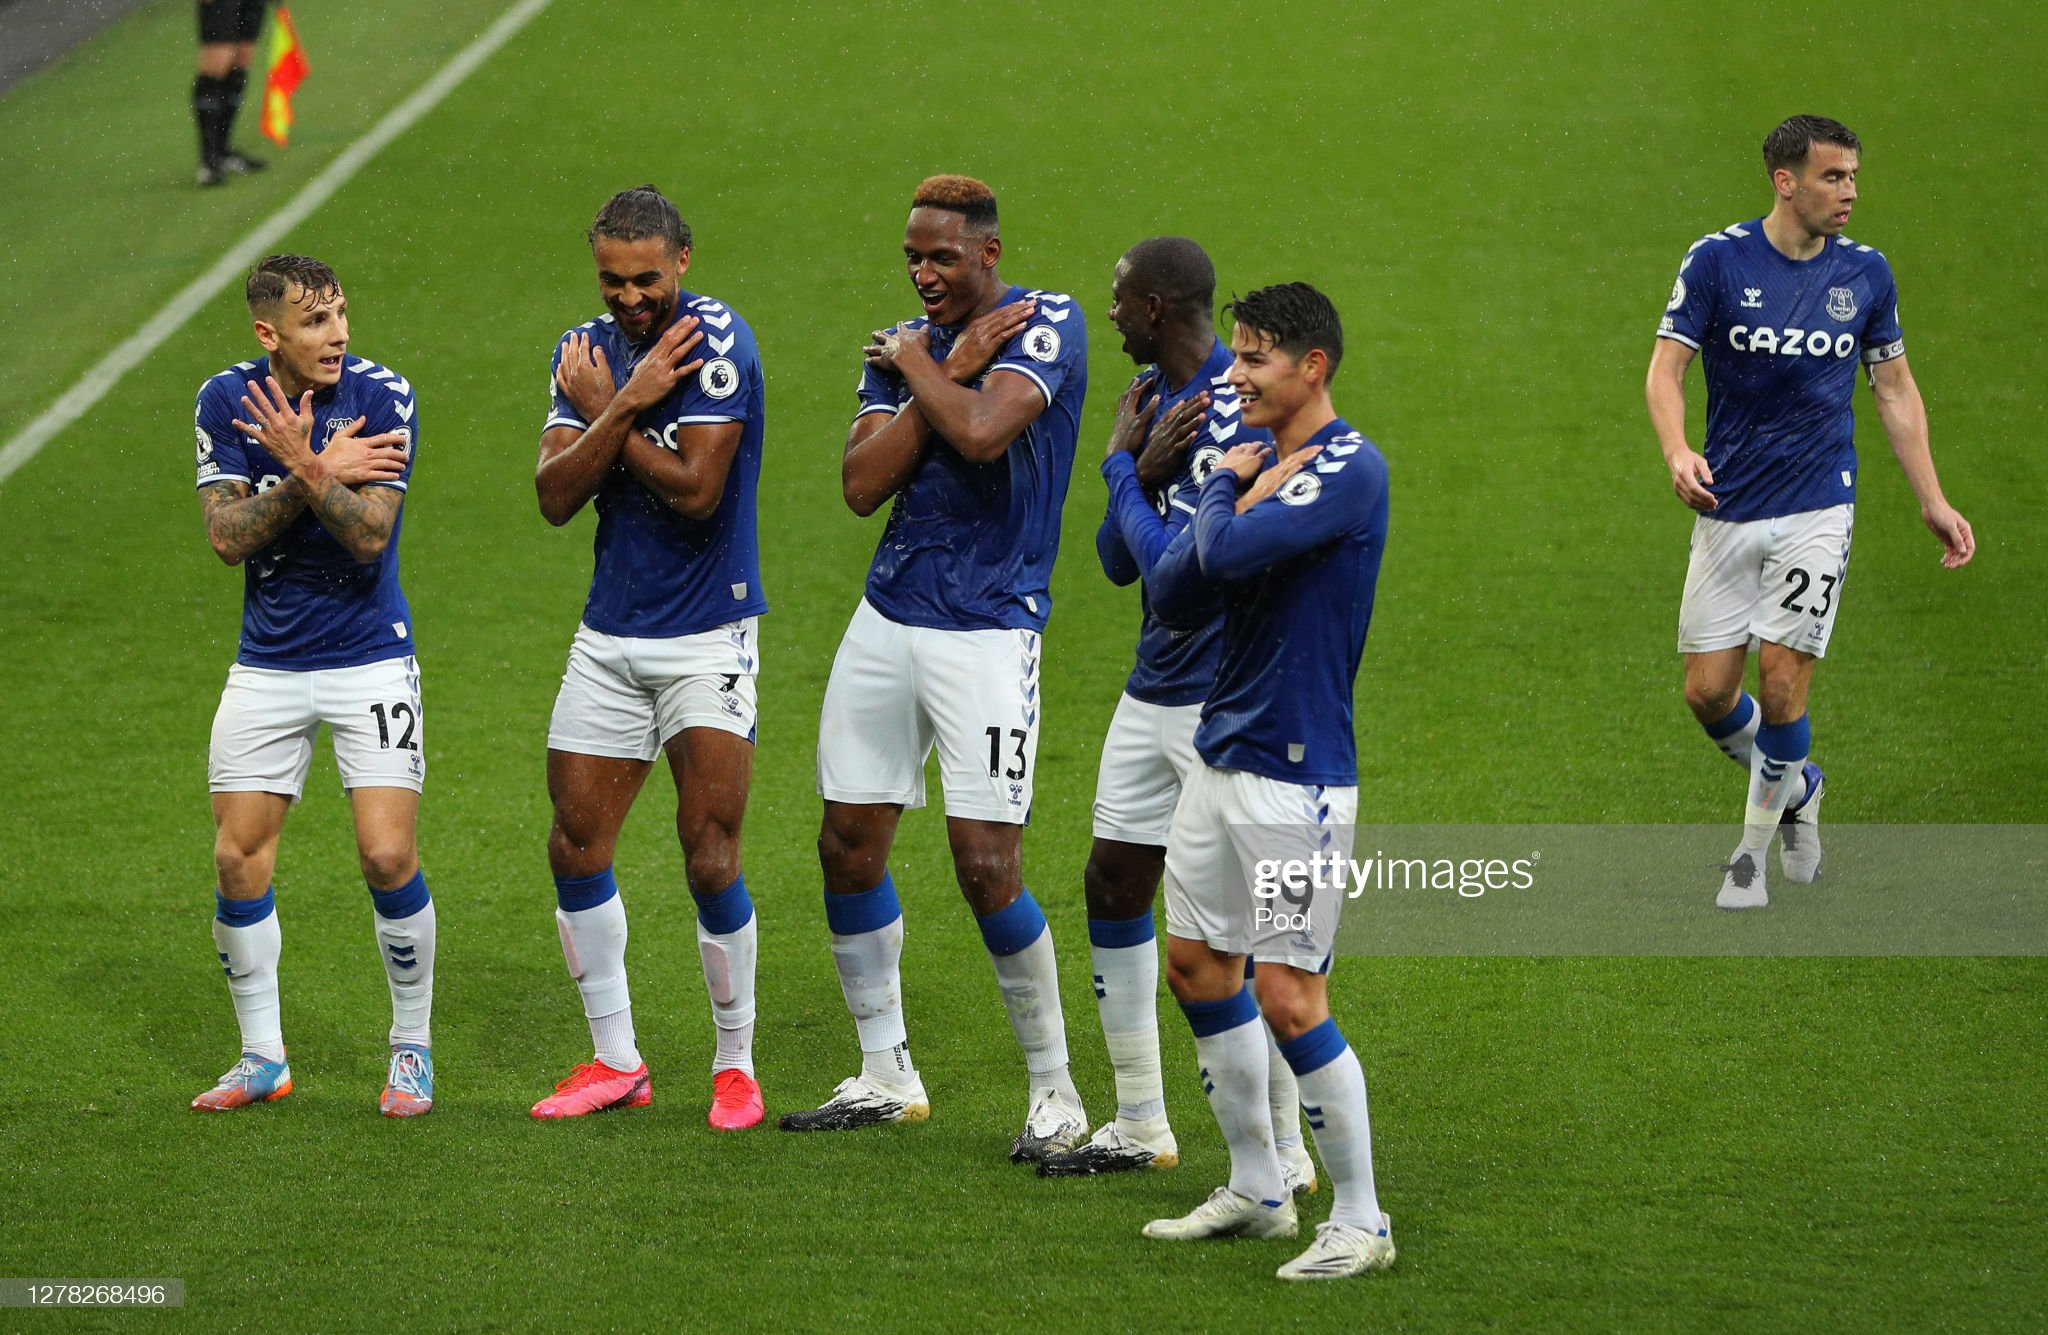 Everton's run continues – but the real work starts now